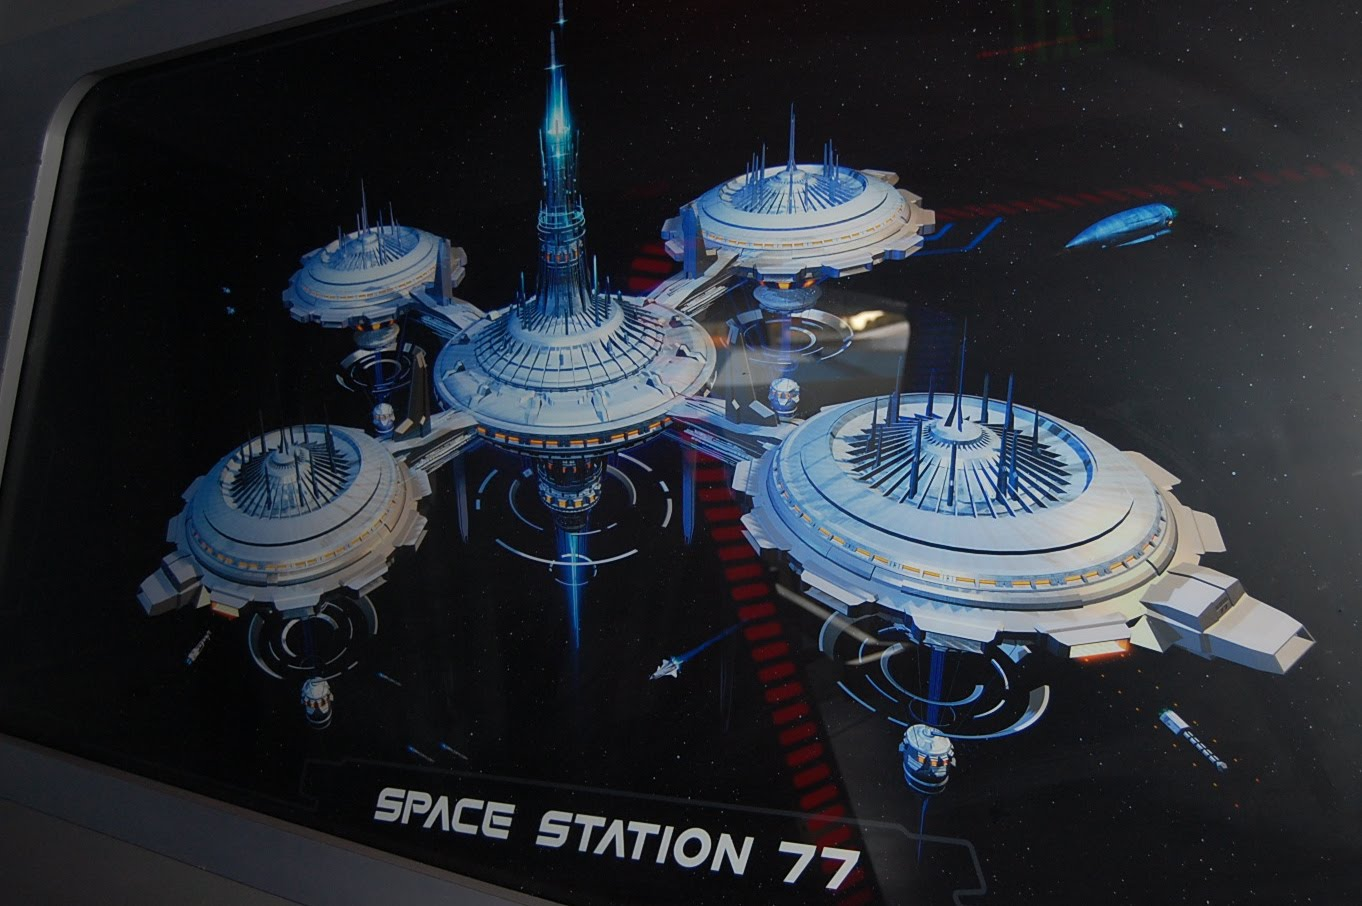 Space Station 77